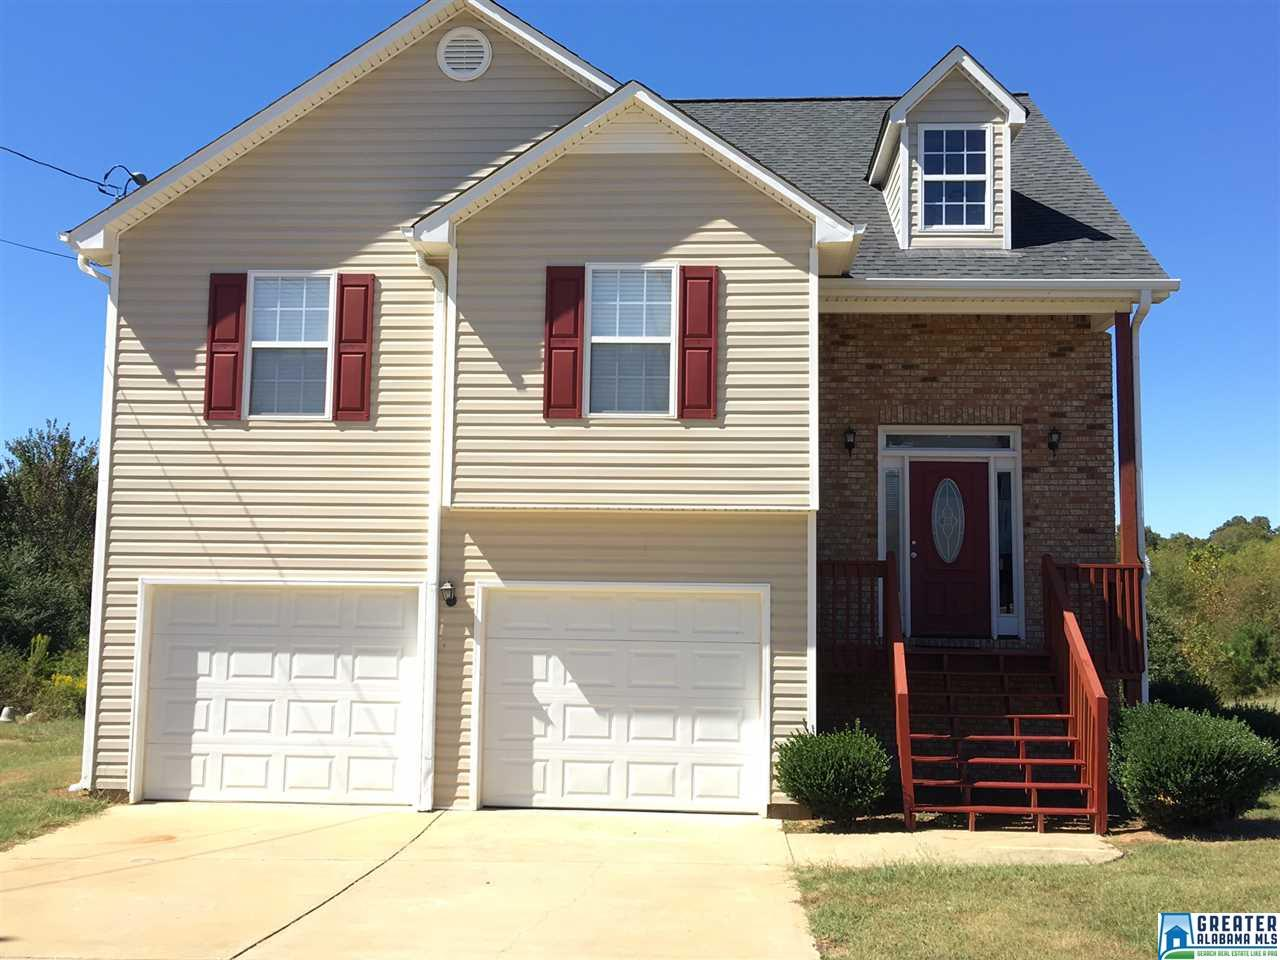 148 Lincoln Oaks Dr, Talladega, AL - USA (photo 1)